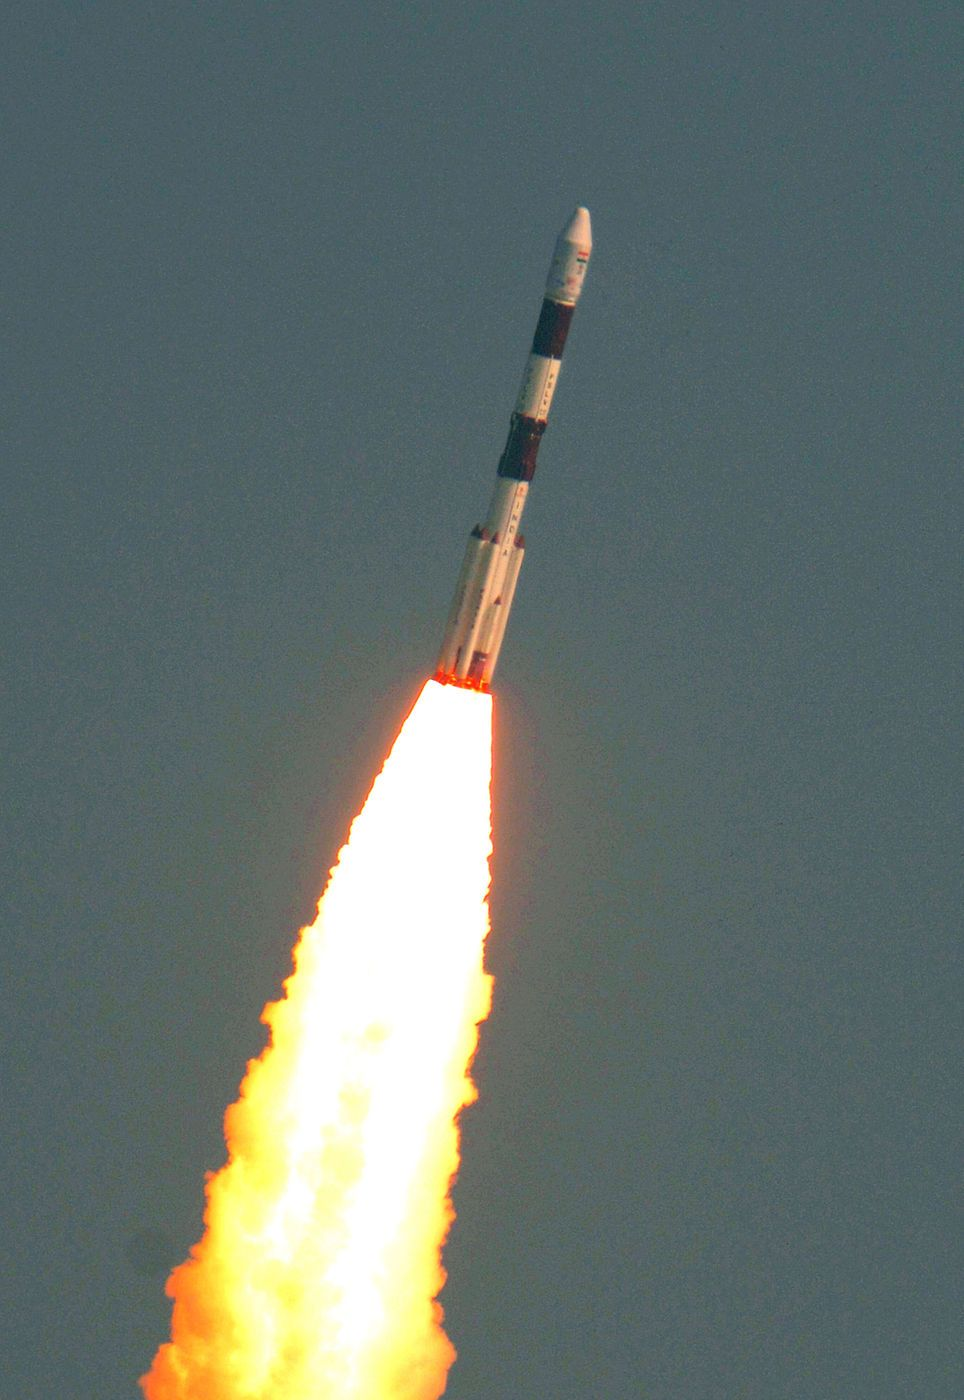 The Indian Space Research Organisation Isro Launched 104 Satellites Into Orbit Ab Indian Space Research Organisation Mars Orbiter Mission Astronauts In Space